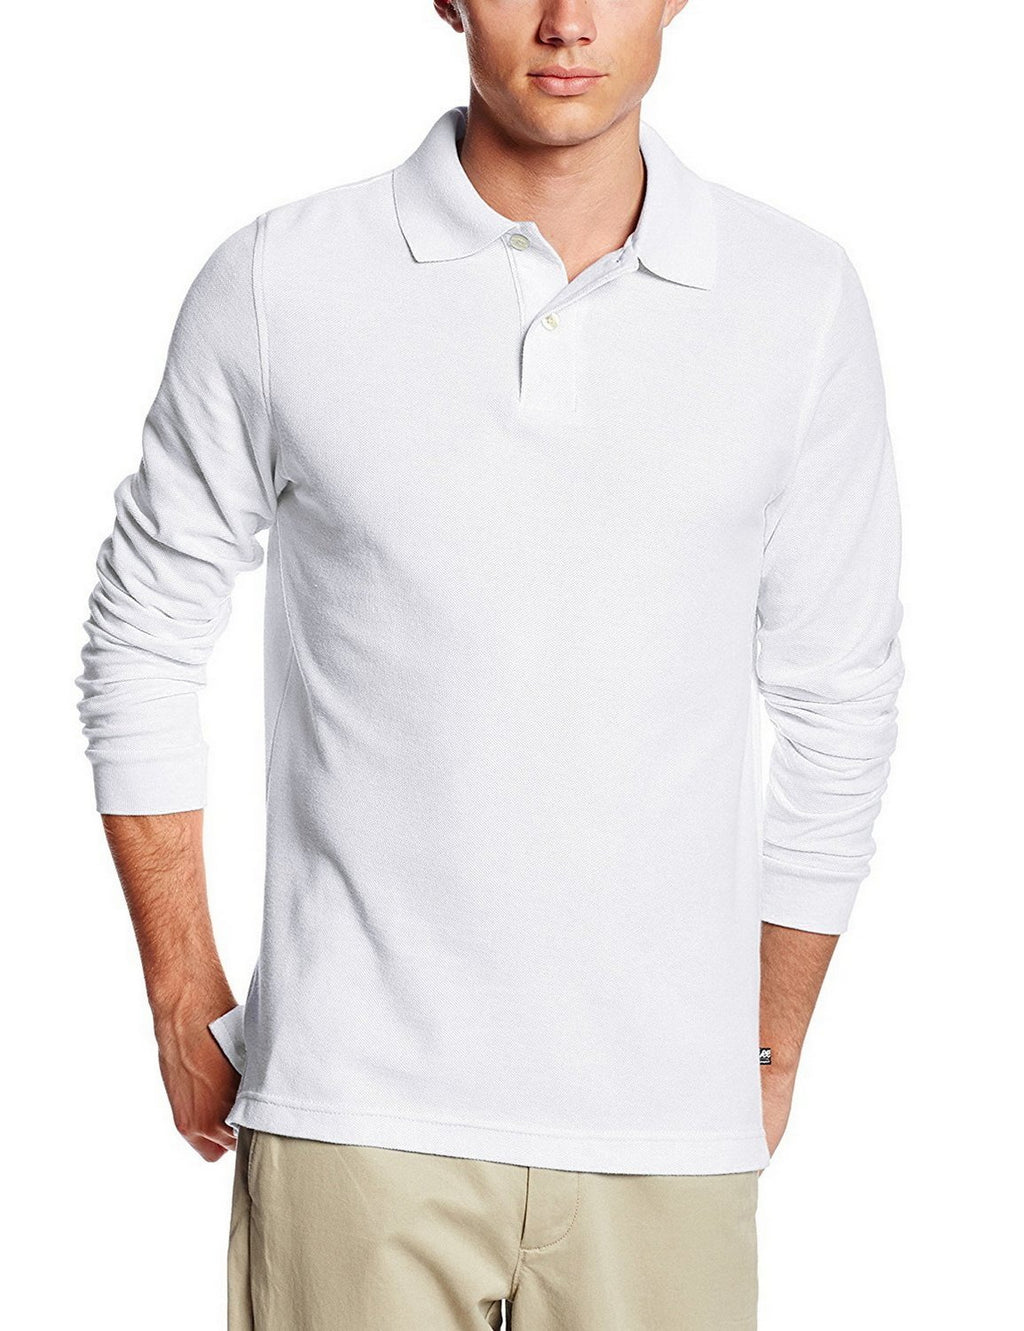 lee-uniforms-men's-modern-fit-long-sleeve-polo